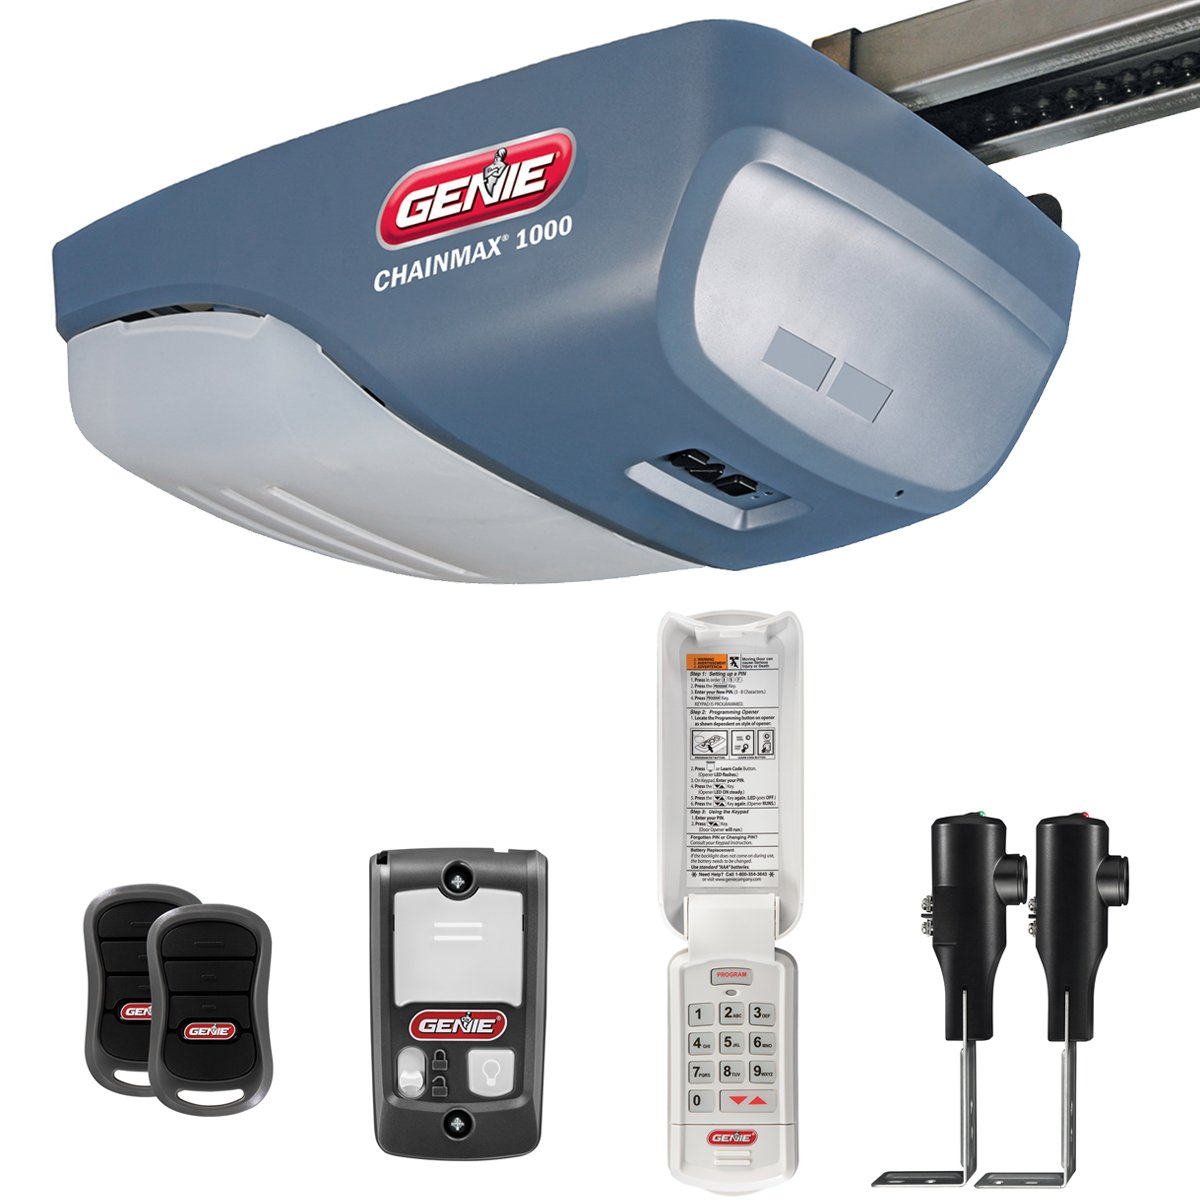 10 Best Garage Door Openers Review 2019 With Buying Guide